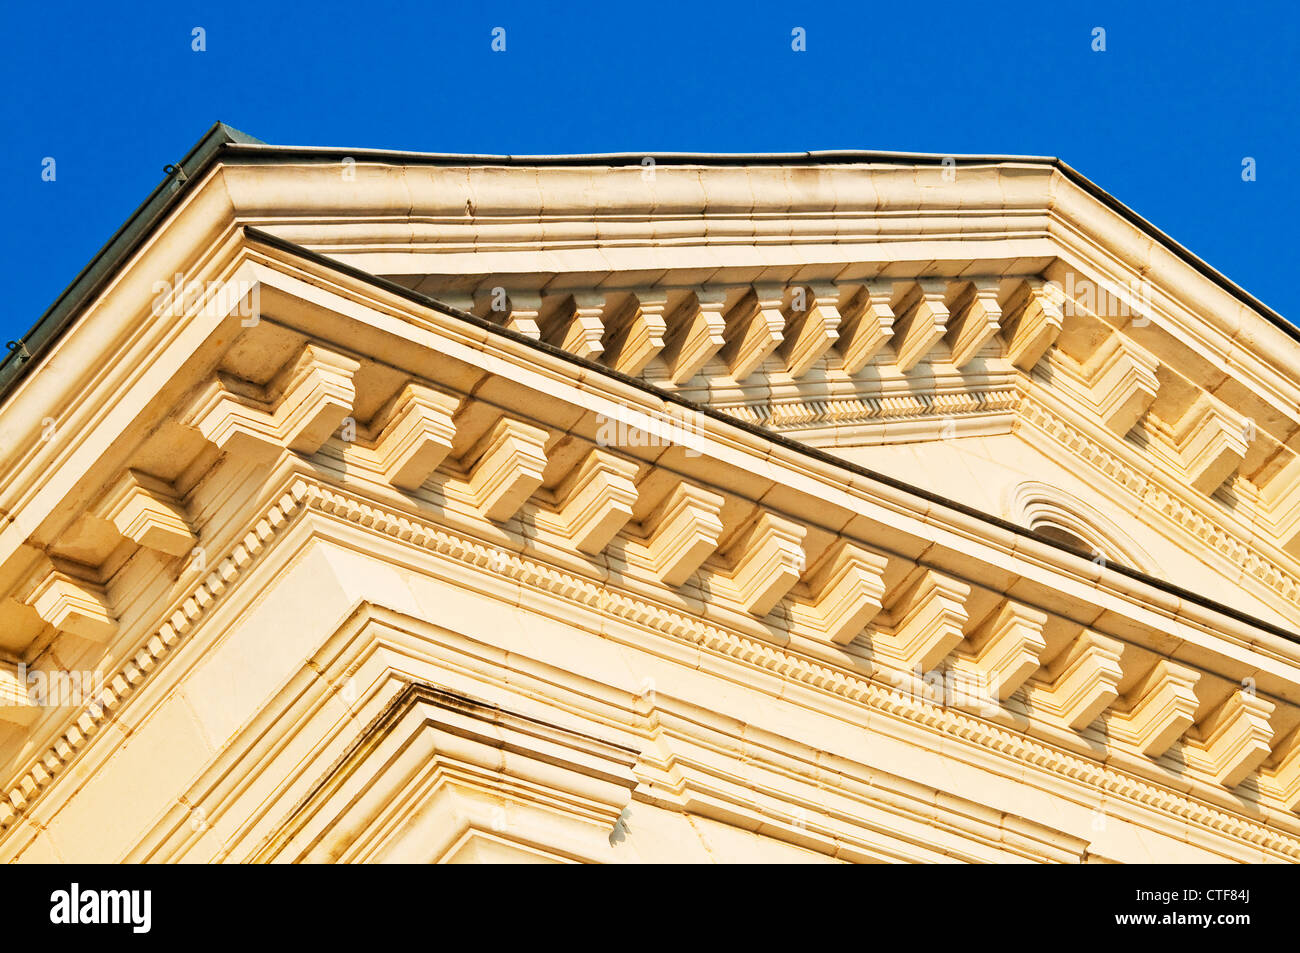 Town Hall / Mairie / Hotel de Ville classical architectural details - France. - Stock Image